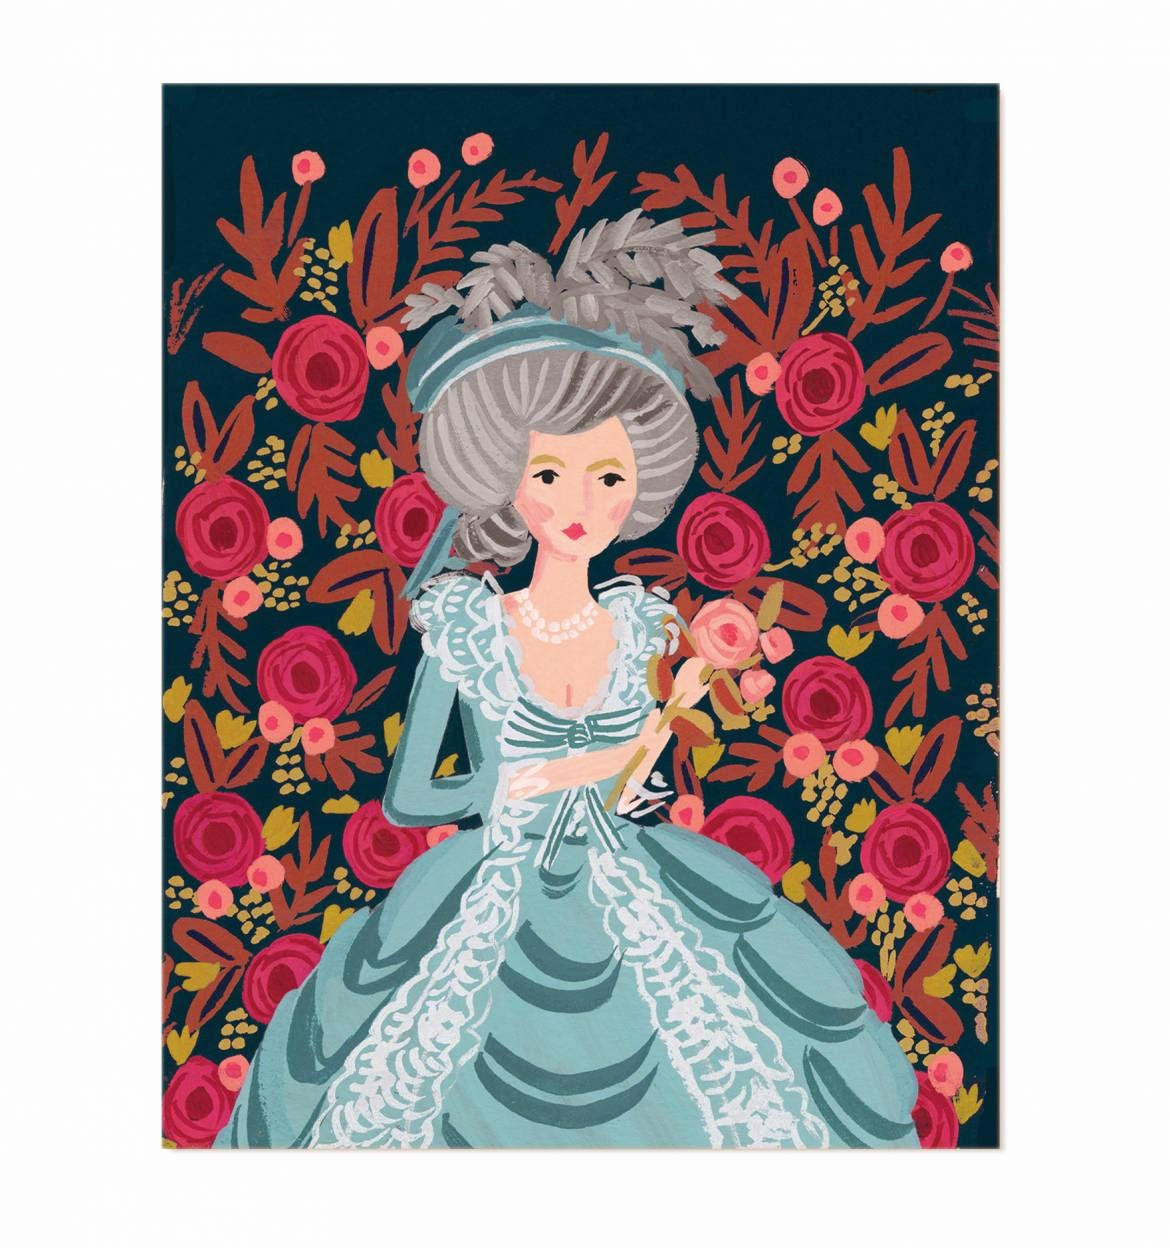 https://riflepaperco.com/shop/marie-antoinette-illustrated-art-print/